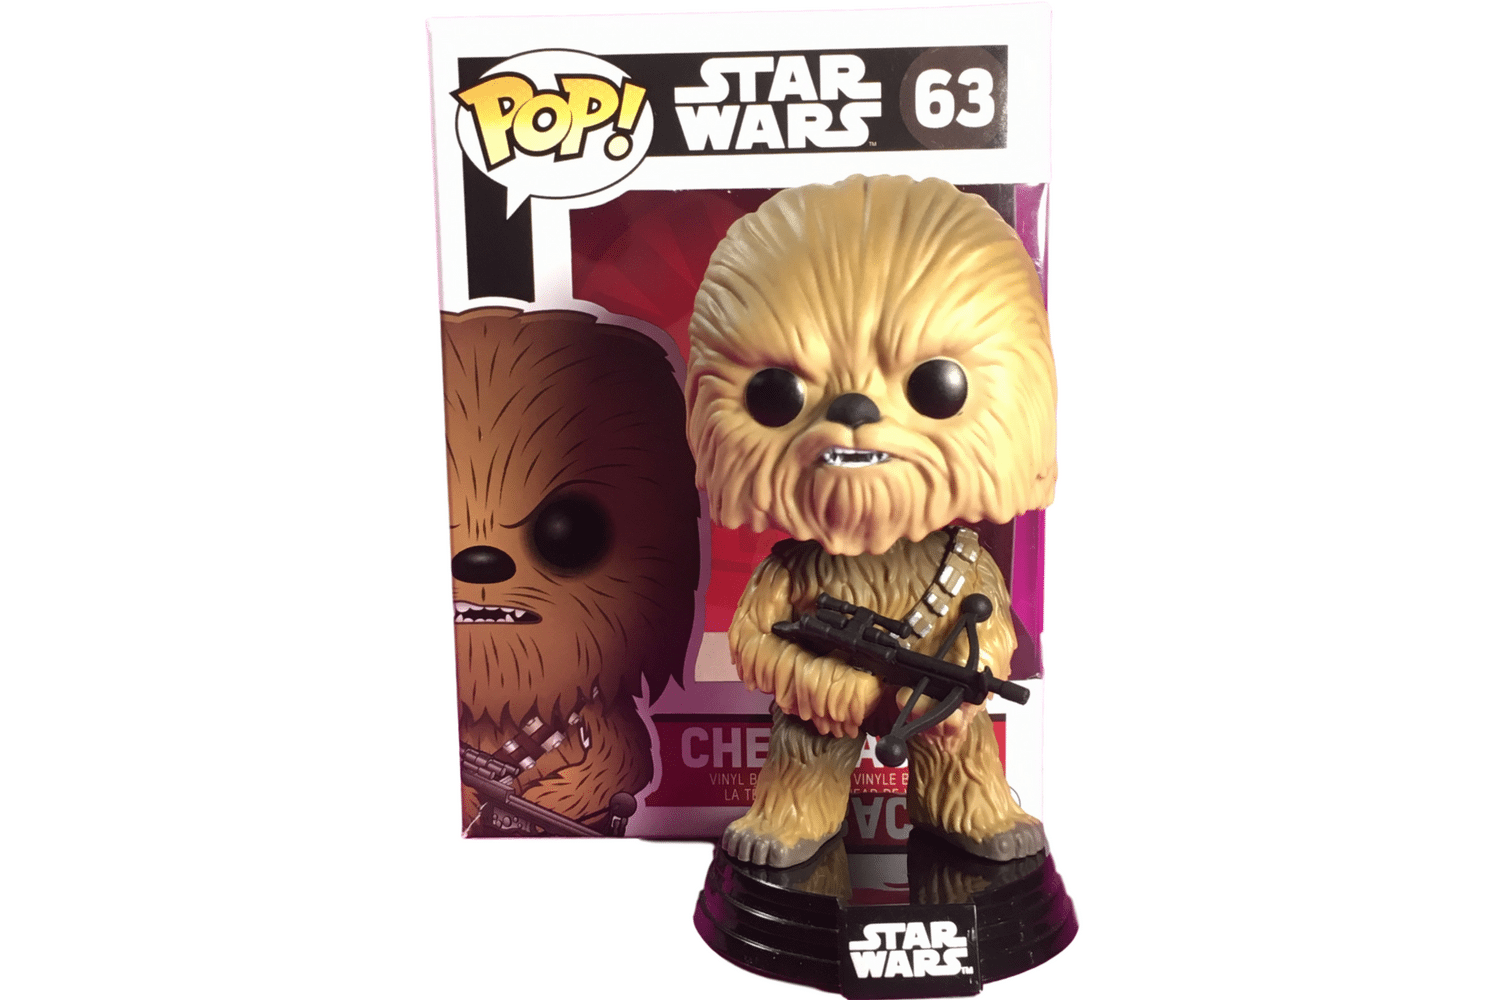 Chewbacca #63 Funko Pop Star Wars Guide